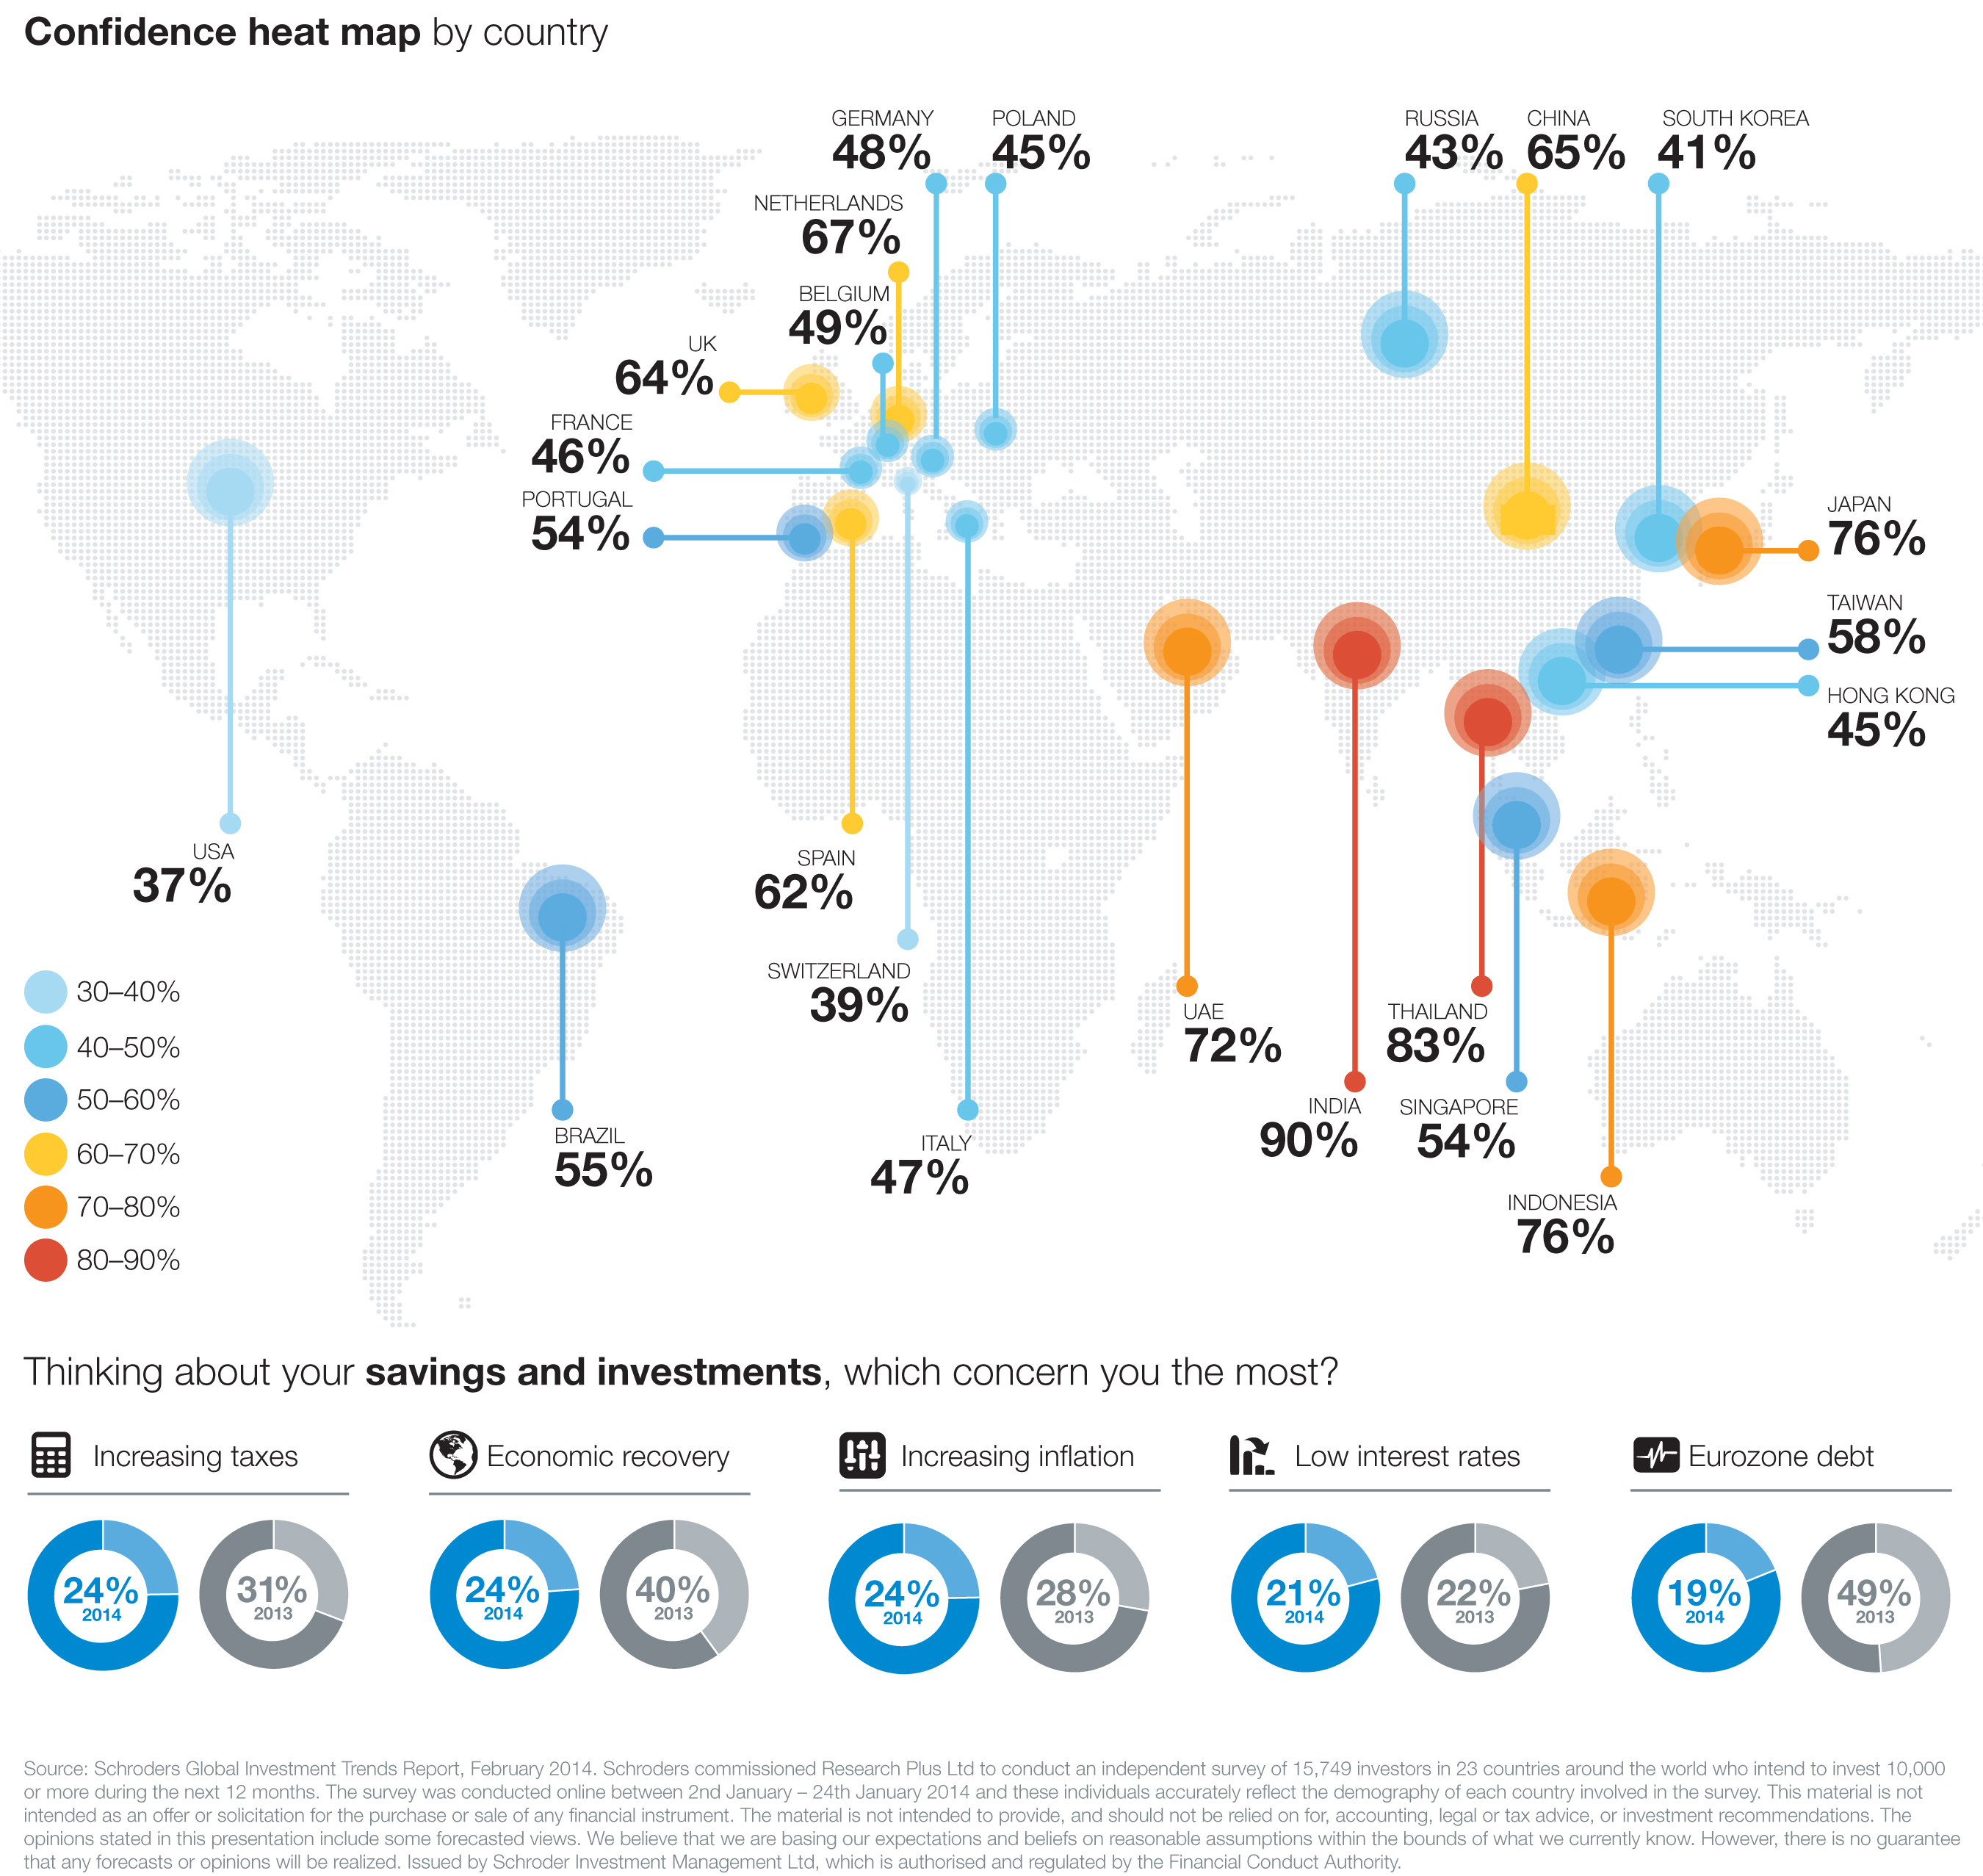 Schroders Global Investment Trends Survey: As global investor confidence rebounds, U.S. investors are the exception according to a comprehensive new report of investor sentiment by Schroders. Only 37% of U.S. investors feel more confident about investment opportunities this year, down from 59% last year; they cited fears of higher taxes (33%), a weak or prolonged global economic recovery (33%) and rising inflation (24%) as the reasons for their erosion of confidence. More info: www.schroders.com/sgitr2014.  (PRNewsFoto/Schroders)